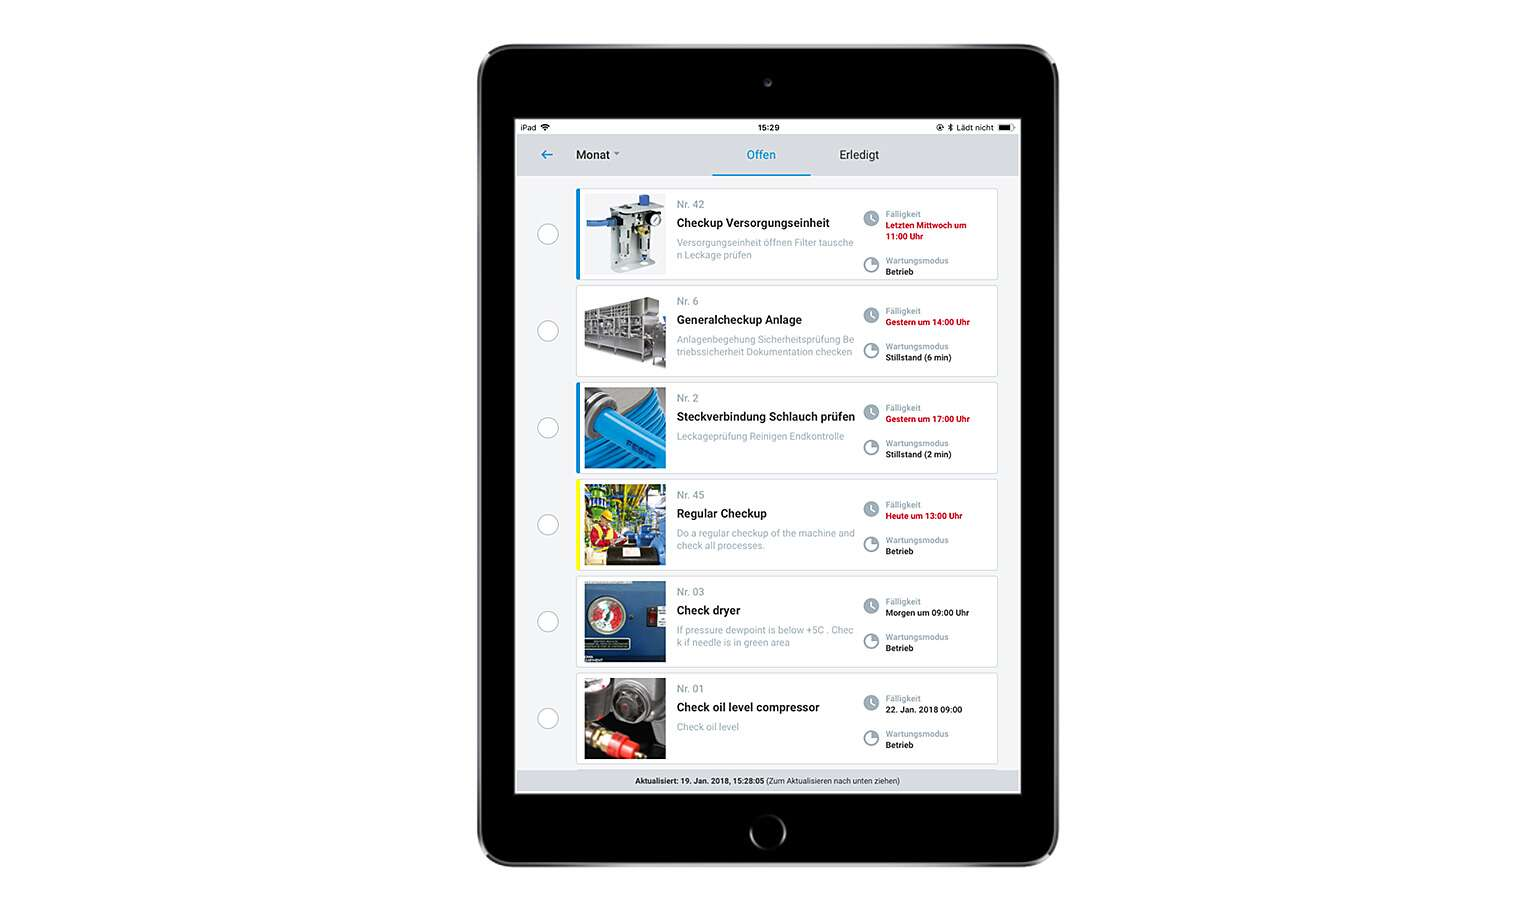 The maintenance calendar as an app for the facility operators